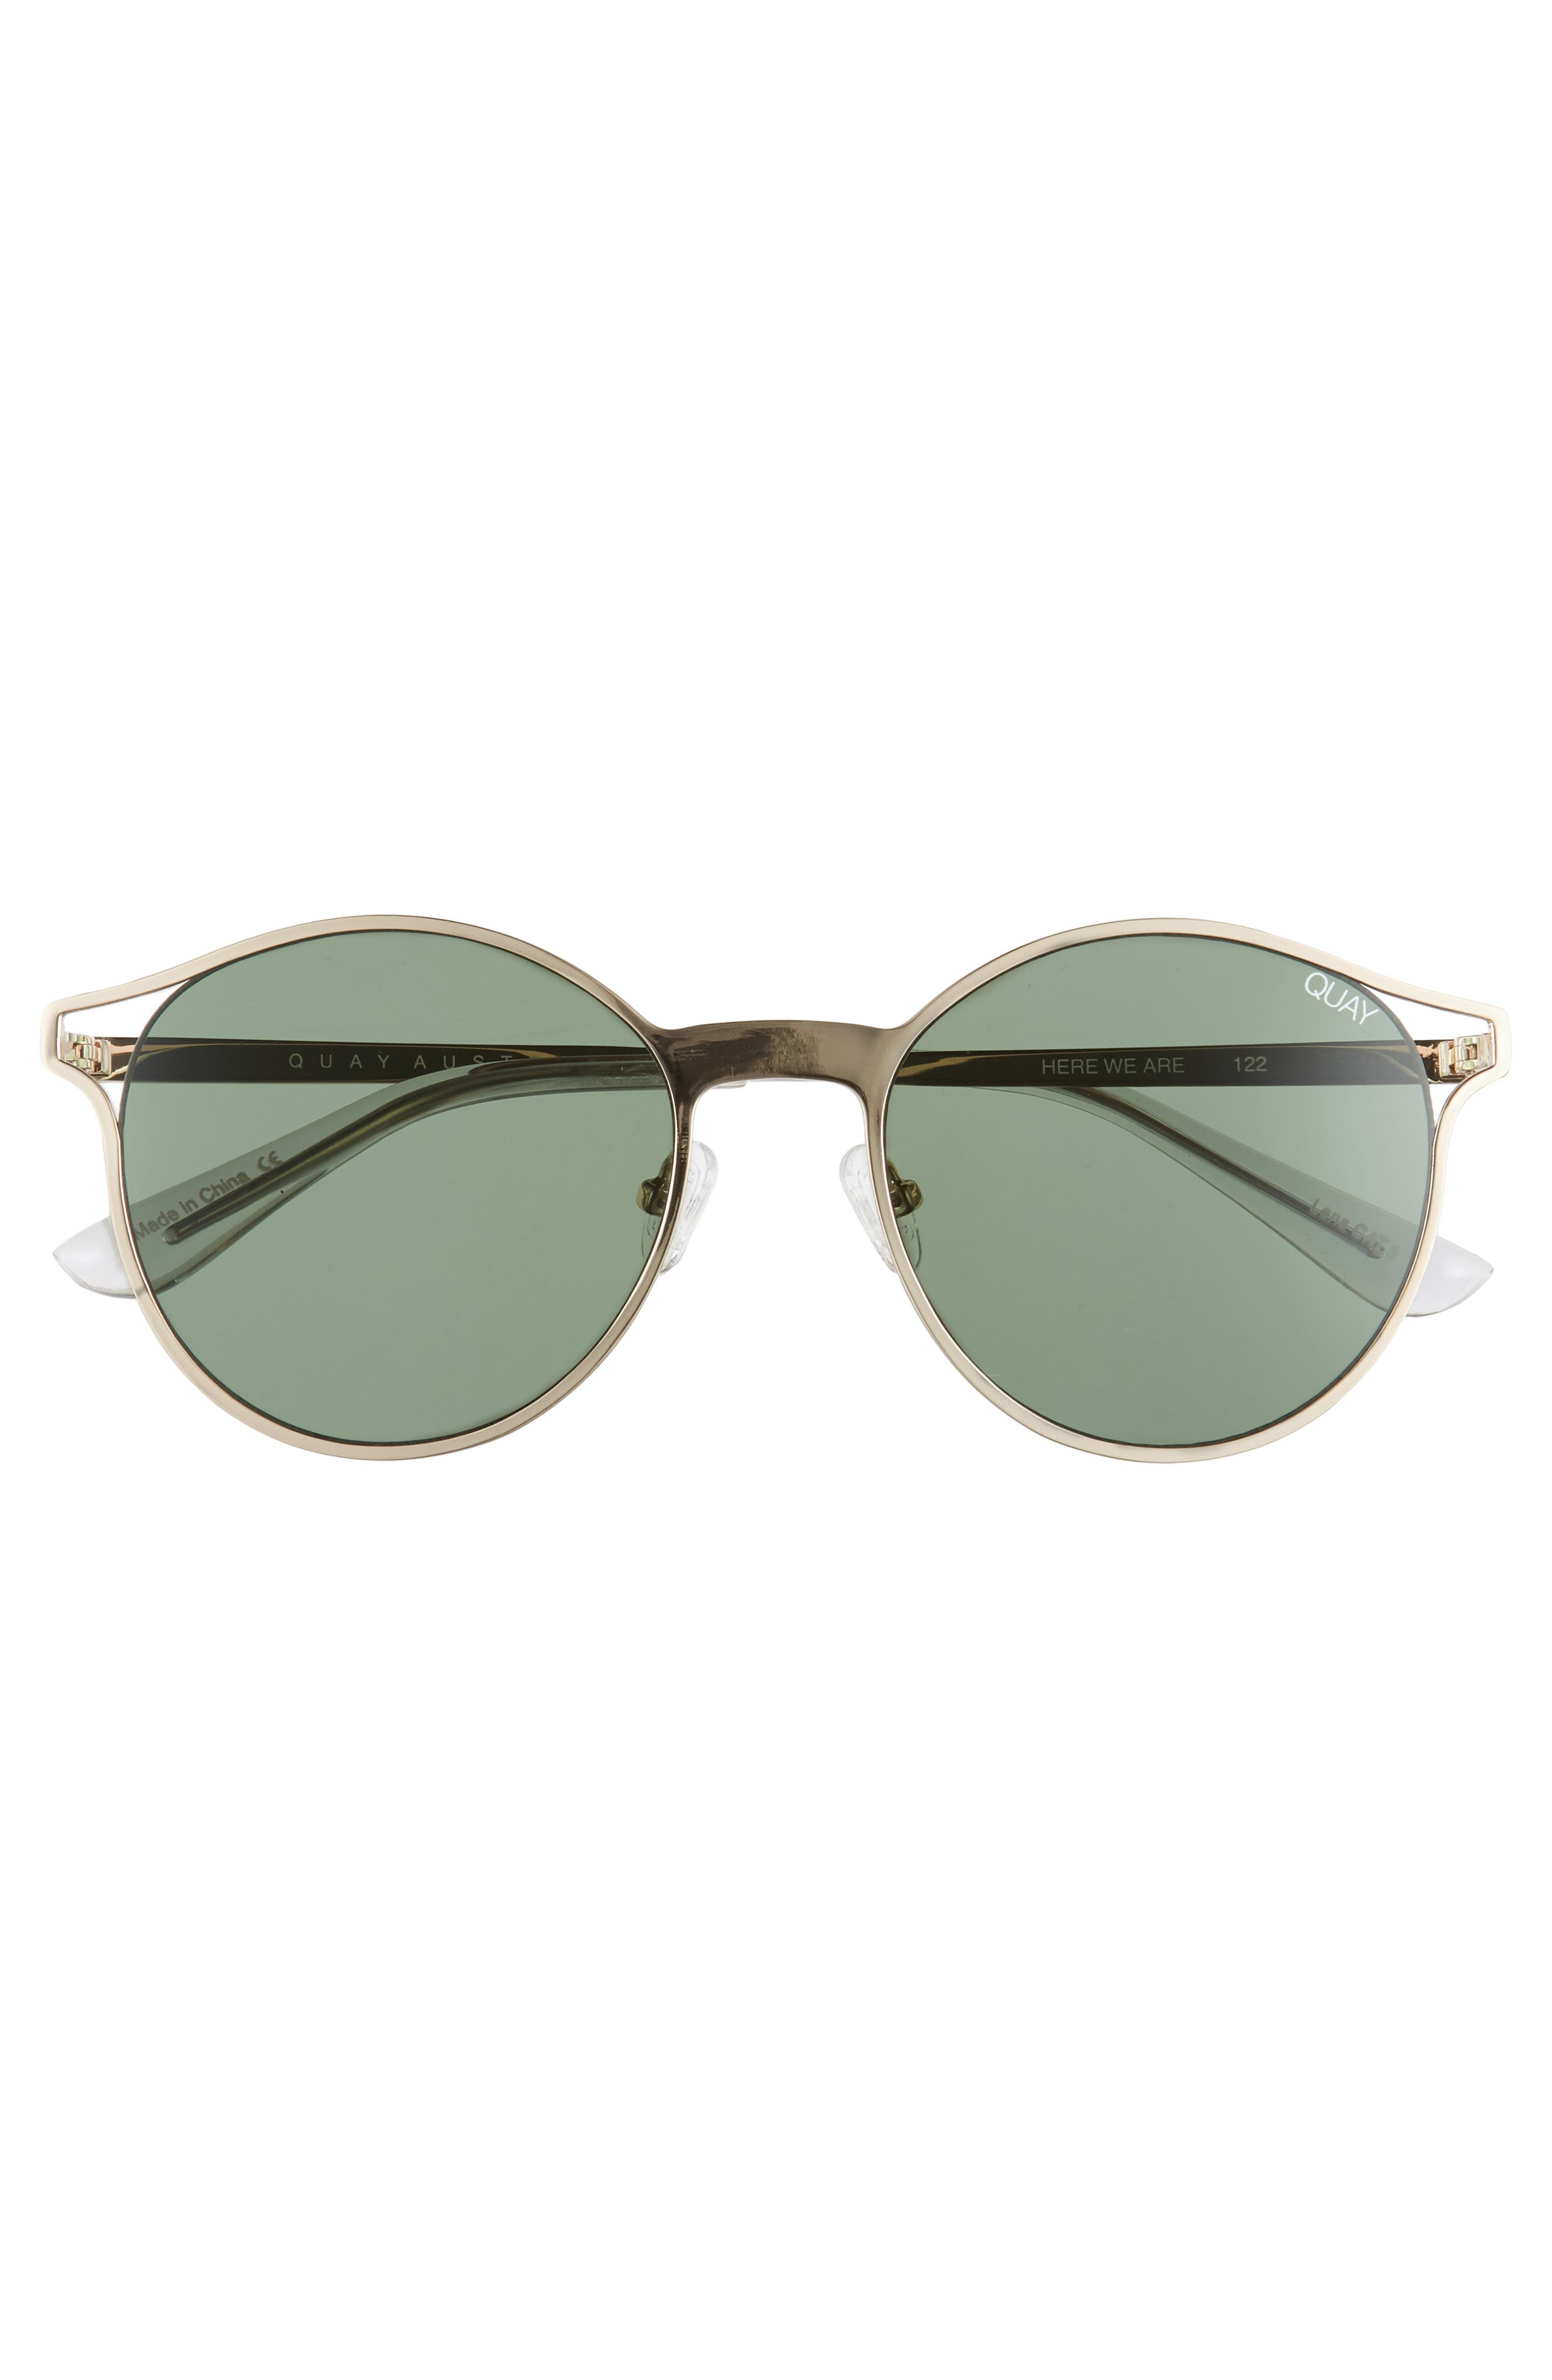 Here We Are 53mm Round Sunglasses,                             Alternate thumbnail 3, color,                             Gold/ Green